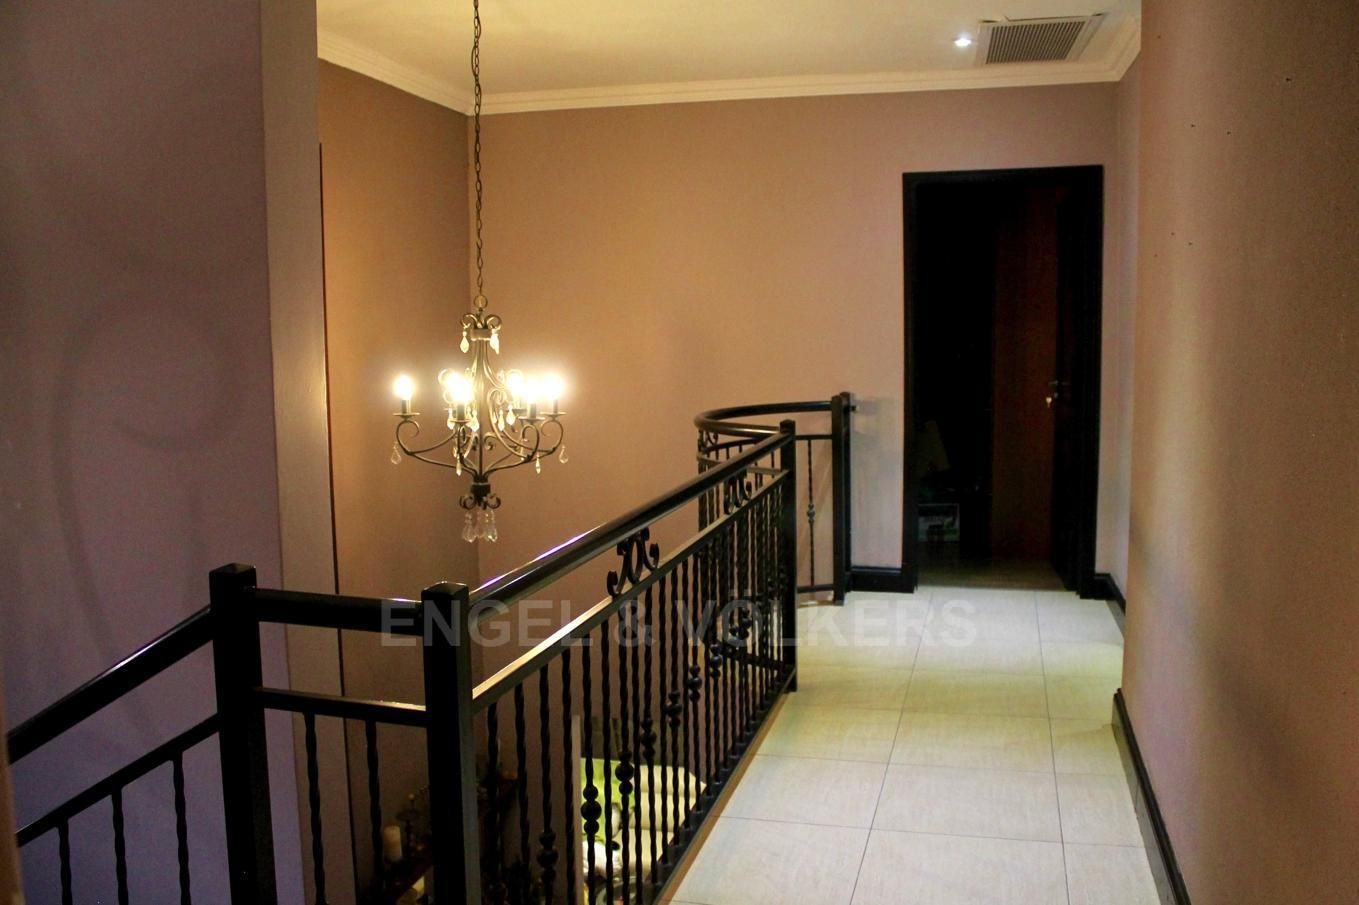 House in Westlake - Double volume staircase